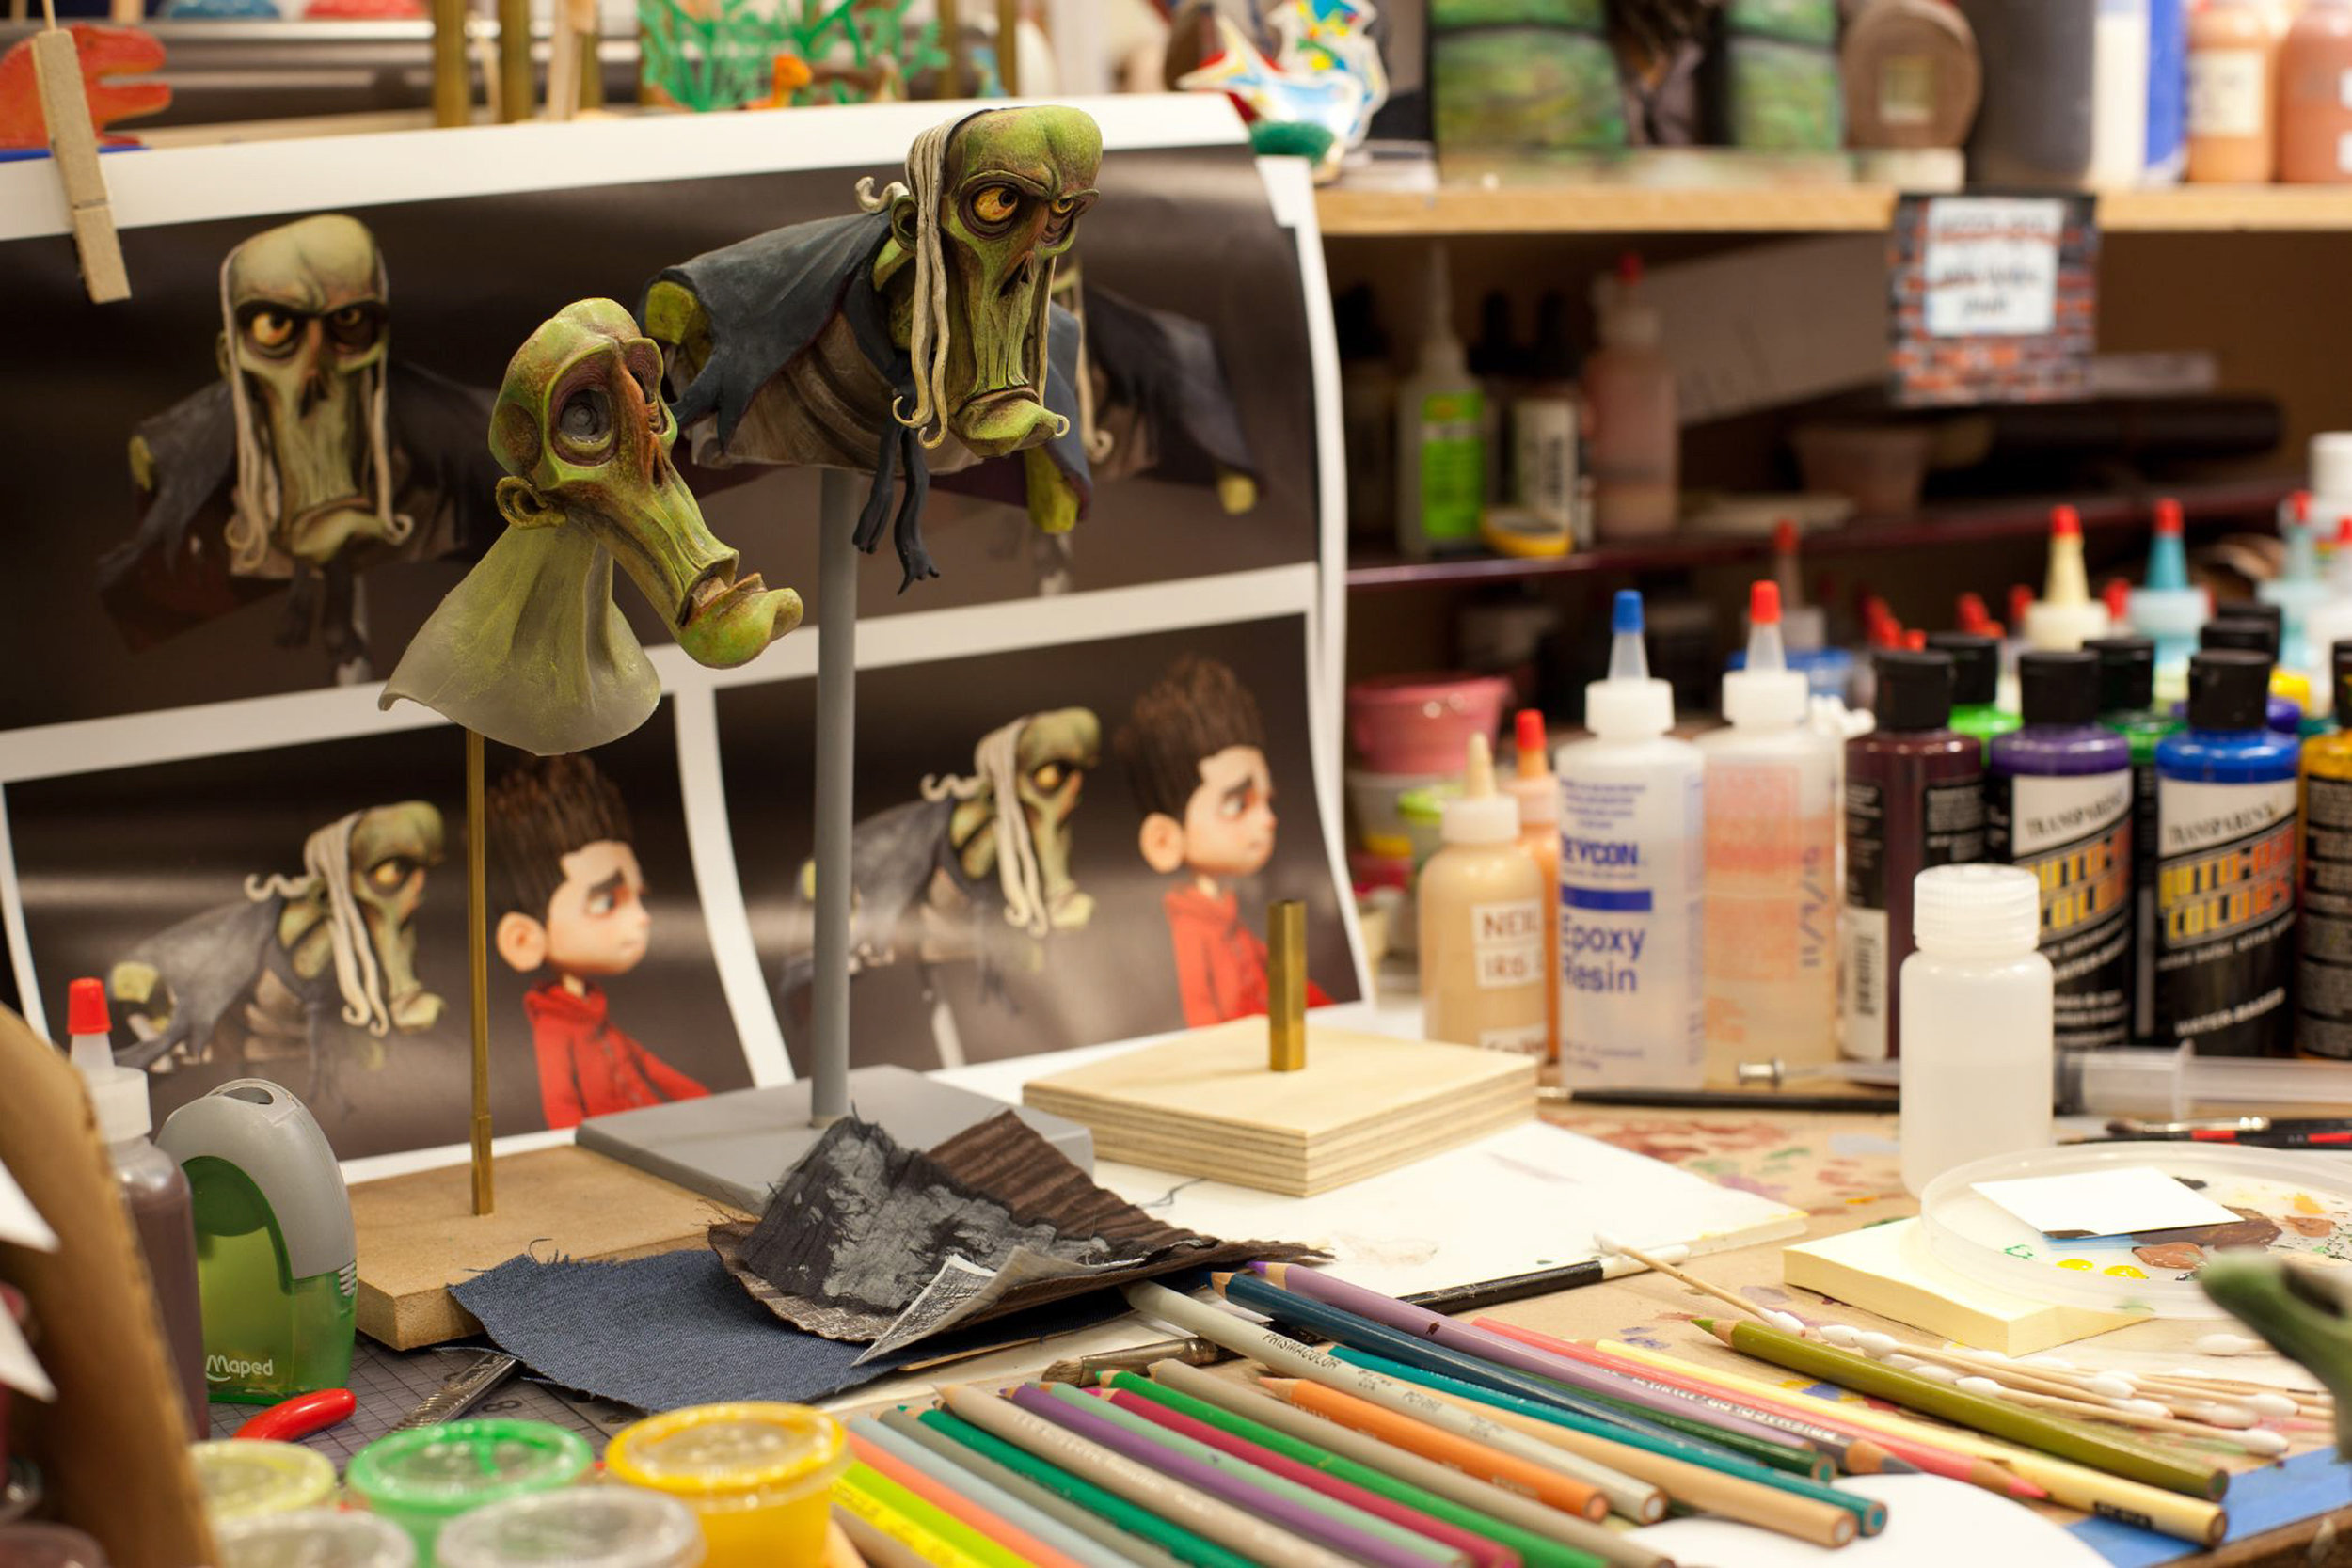 Hand-painting zombies takes many shades of green and other colors for ParaNorman, the new 3D stop-motion comedy thriller.  Credit: LAIKA, Inc.